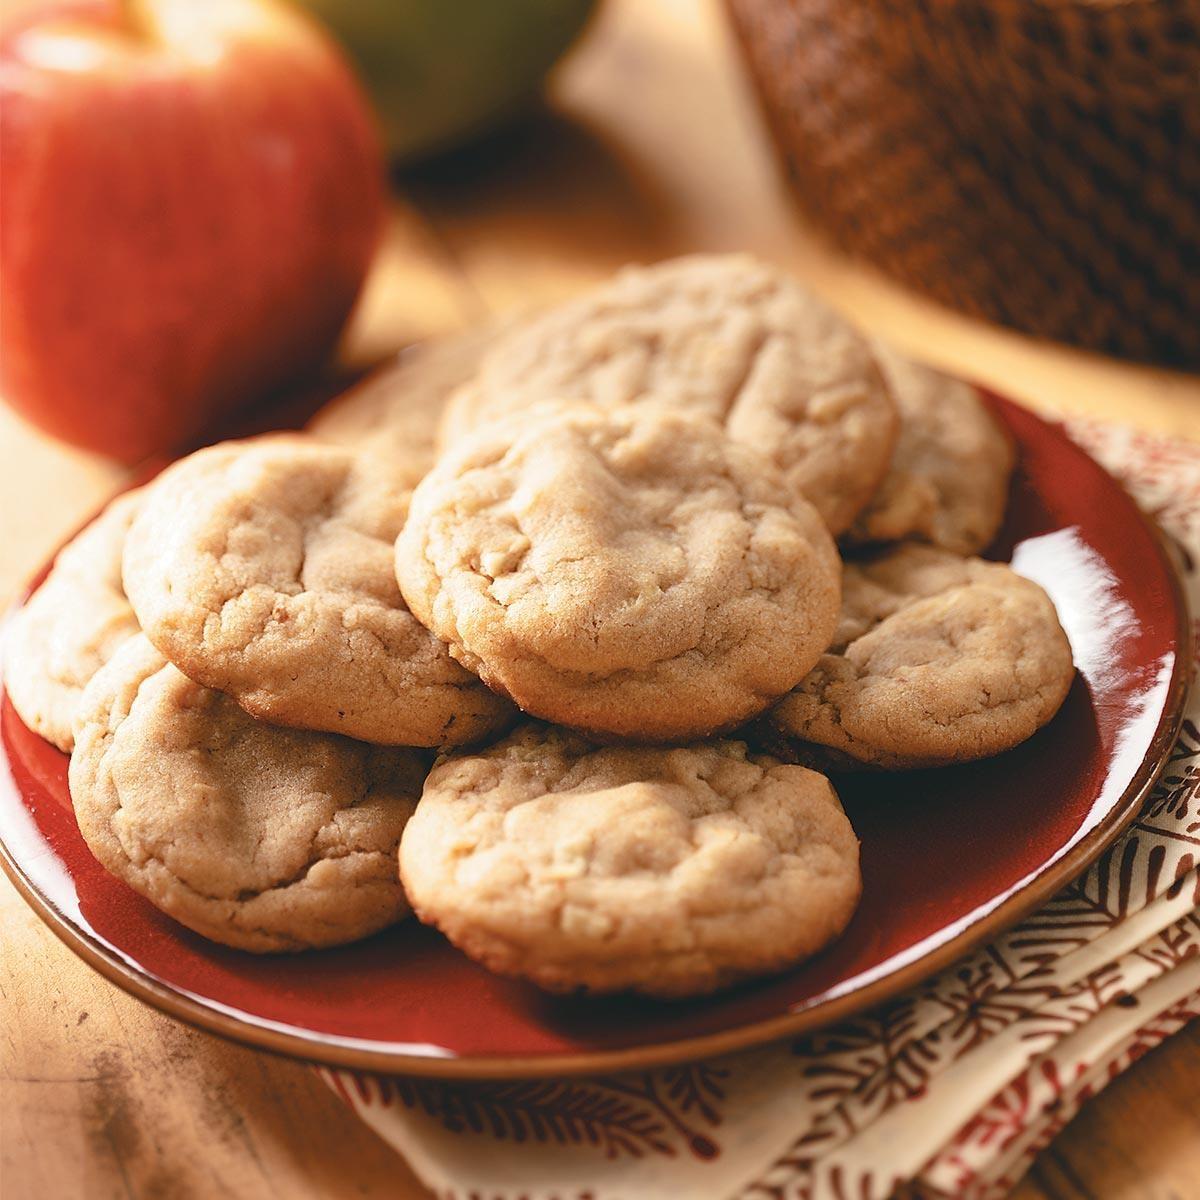 Apple peanut butter cookies recipe taste of home for What to make with apples for dessert